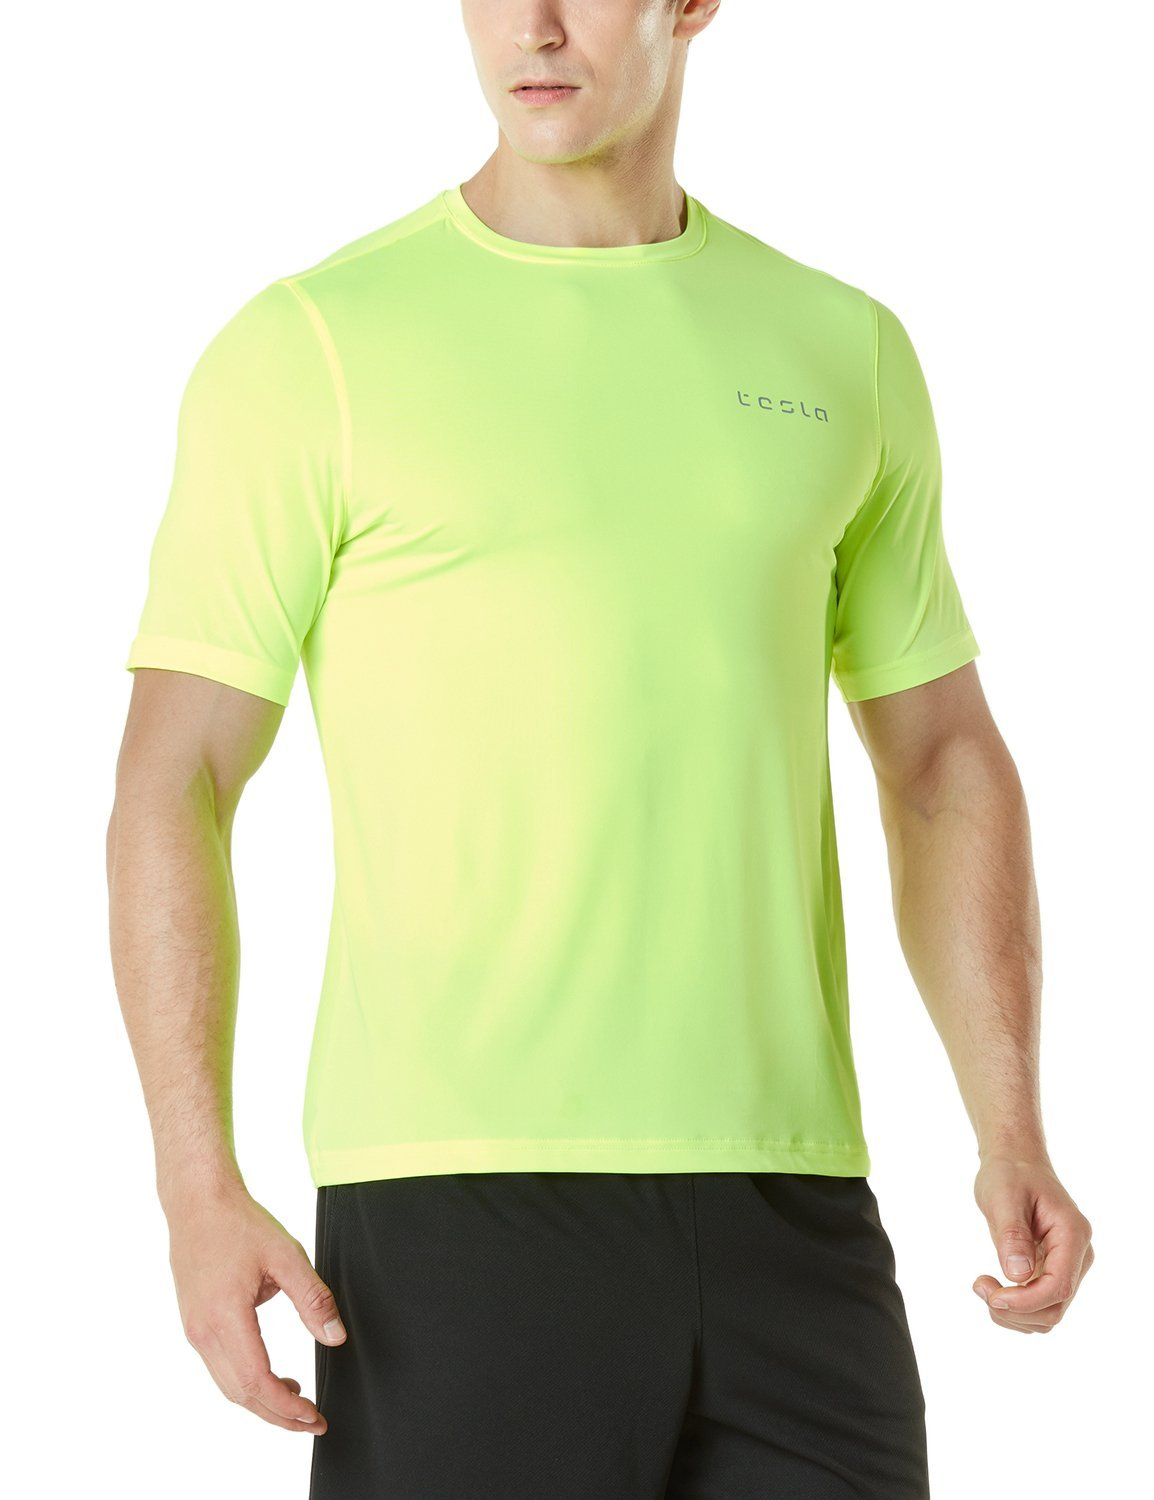 Tesla Men's HyperDri Short Sleeve T-Shirt Athletic Cool Running Top MTS08/MTS06/MTS04/MTS03/MTS07